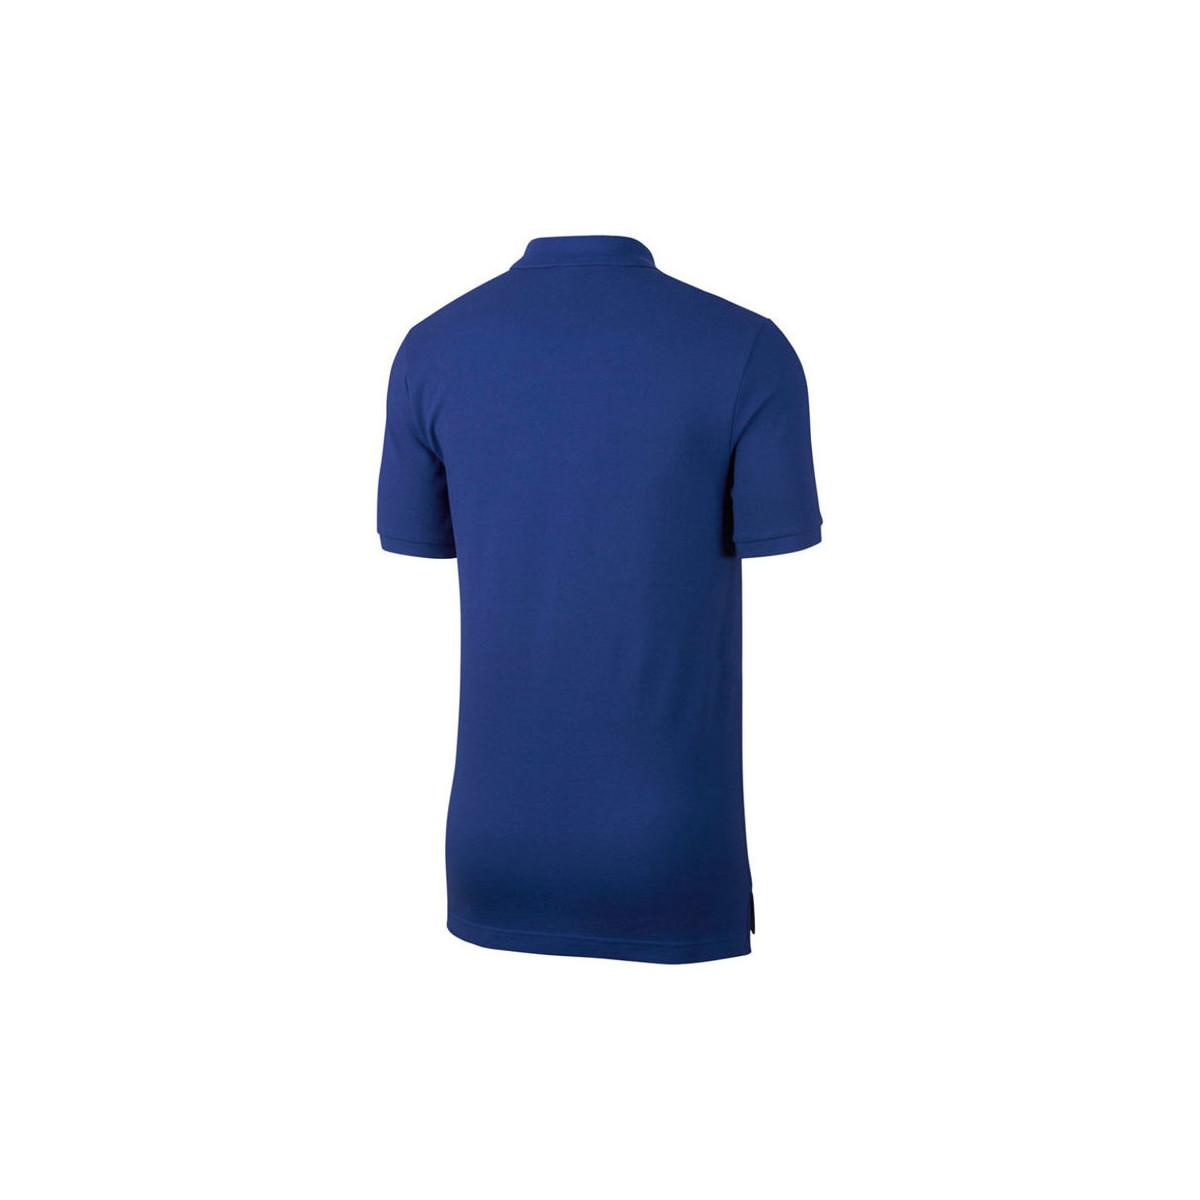 4037abd89 Nike 2017-2018 Chelsea Core Polo Shirt Men's Polo Shirt In Blue in ...